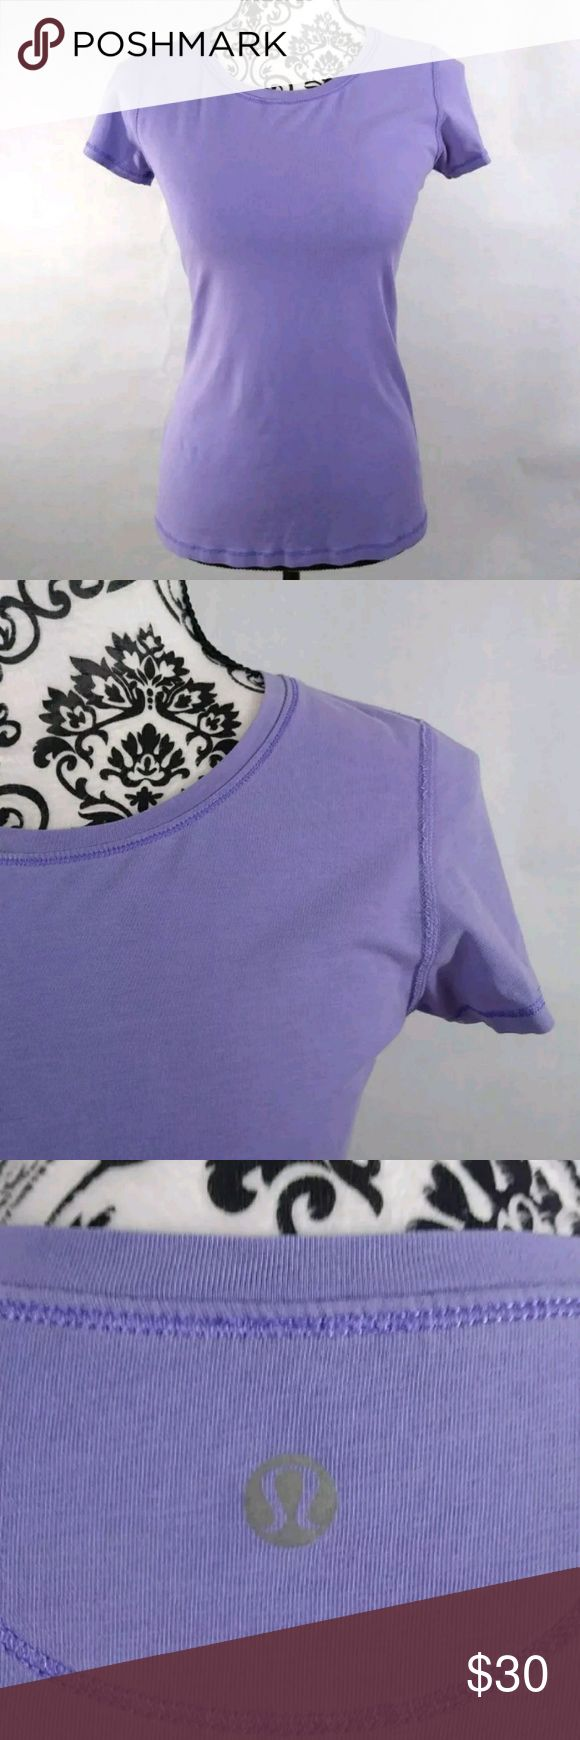 """Women's Lululemon purple shory sleeve shirt size 8 Women's light lilac purple active t-shirt. Lululemon size 8. This is a pre-owned item and the tag has been removed per Lululemon instructions so size is listed according to measurements (Please double check measurements upon purchase. Purple stitching compliments this crew neck tee as well as the signature Lulumon logo on the upper back.  Measurements:  Pit to Pit  16""""  Shoulder to Hem  26""""  Comes from a smoke free home!  This is a…"""